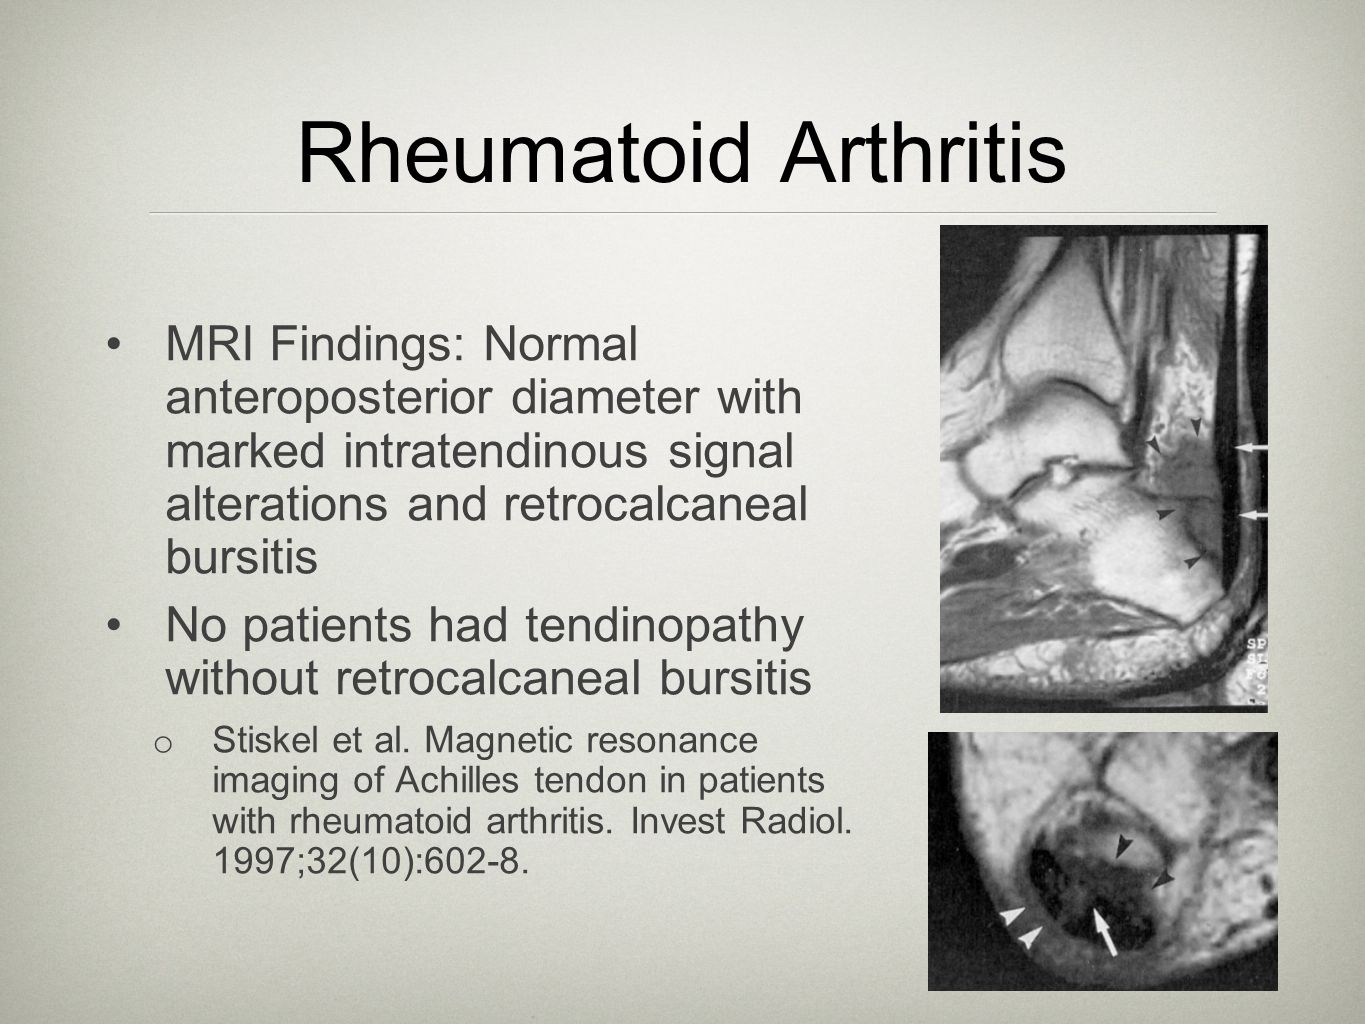 Rheumatoid Arthritis MRI Findings: Normal anteroposterior diameter with marked intratendinous signal alterations and retrocalcaneal bursitis.